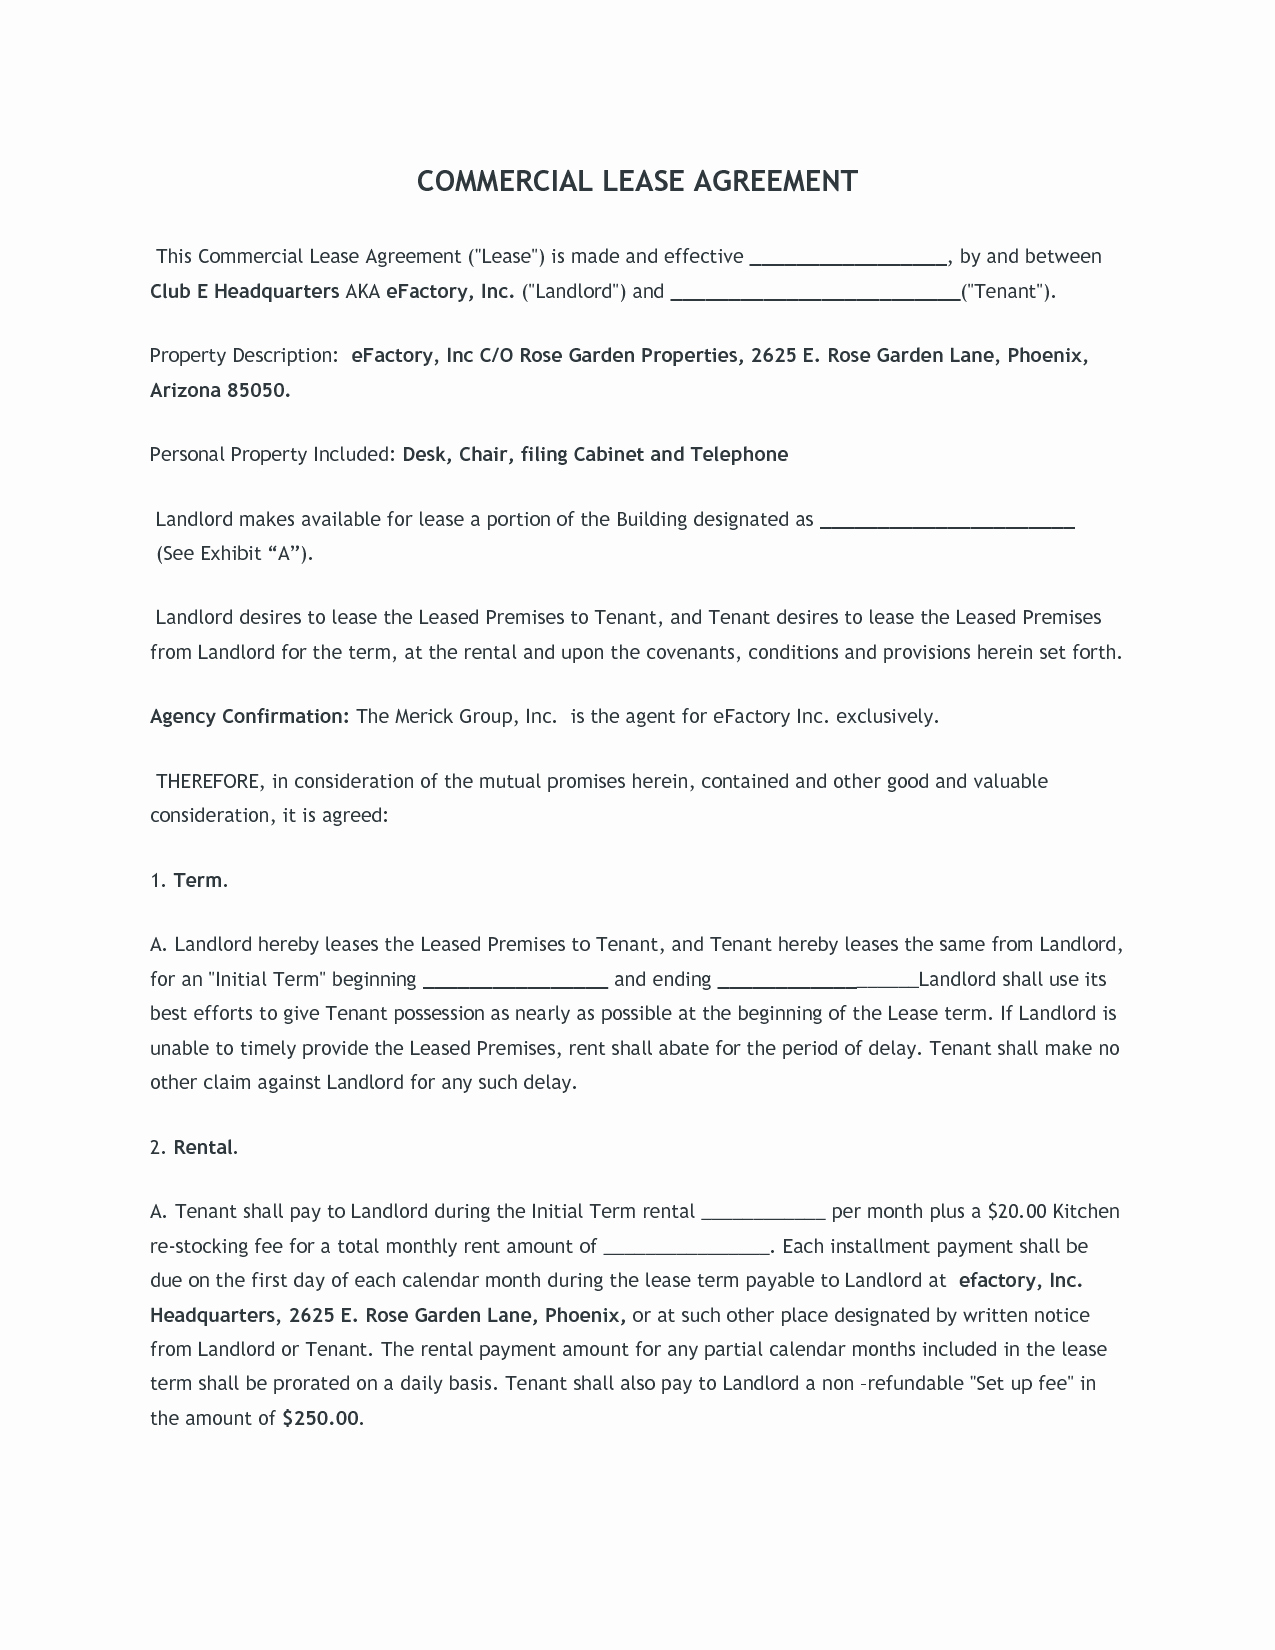 Free Printable Commercial Lease Agreement Best Of Mercial Lease Agreement Free Printable Documents